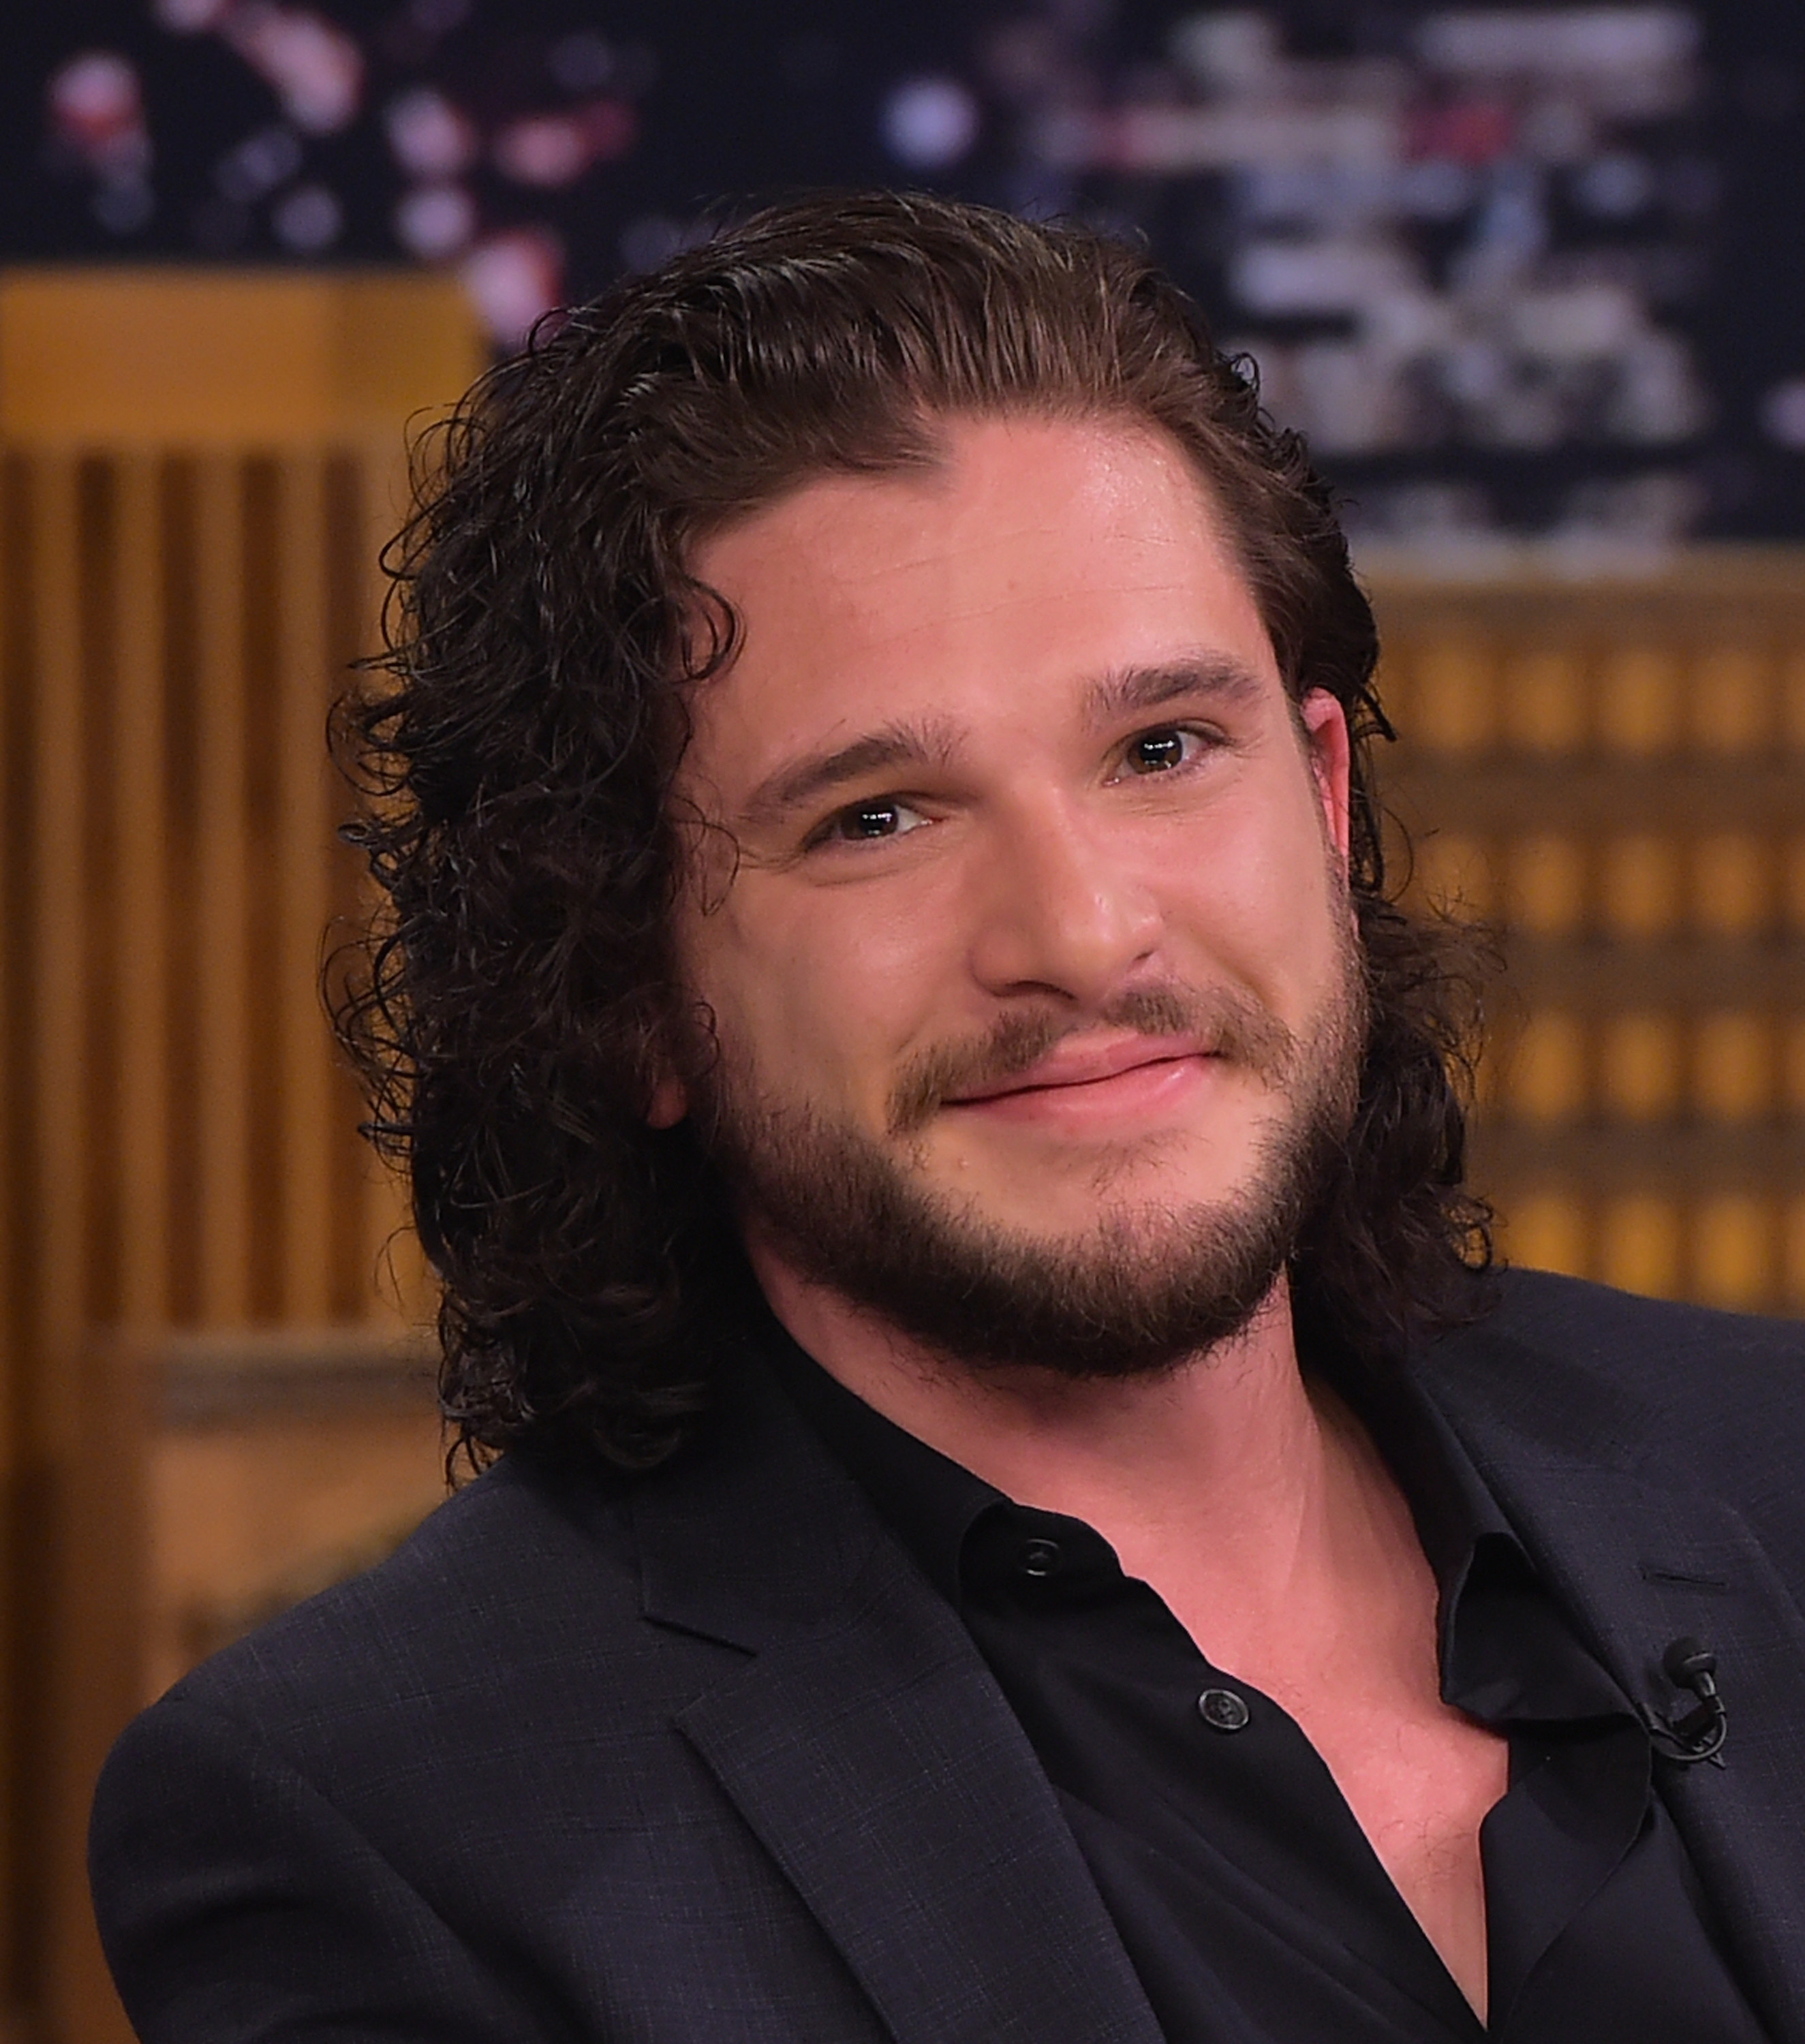 Is Jon Snows Man Perm The New Man Bun Heres Why This Hairstyle Is